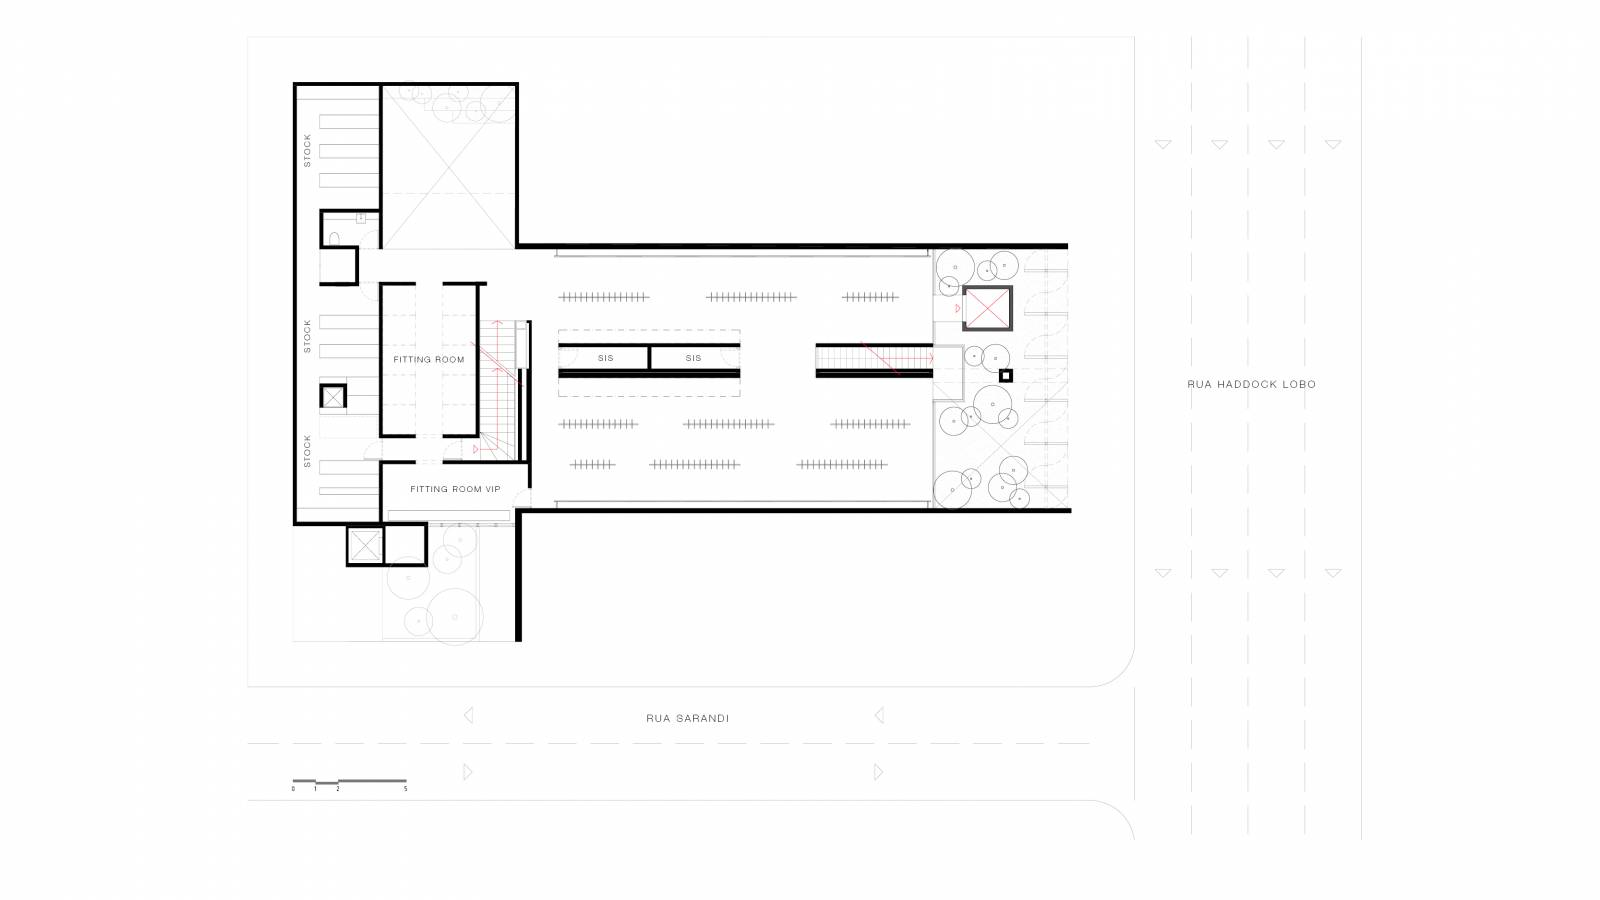 FIRST FLOOR PLAN - NK Store - SPOL Architects